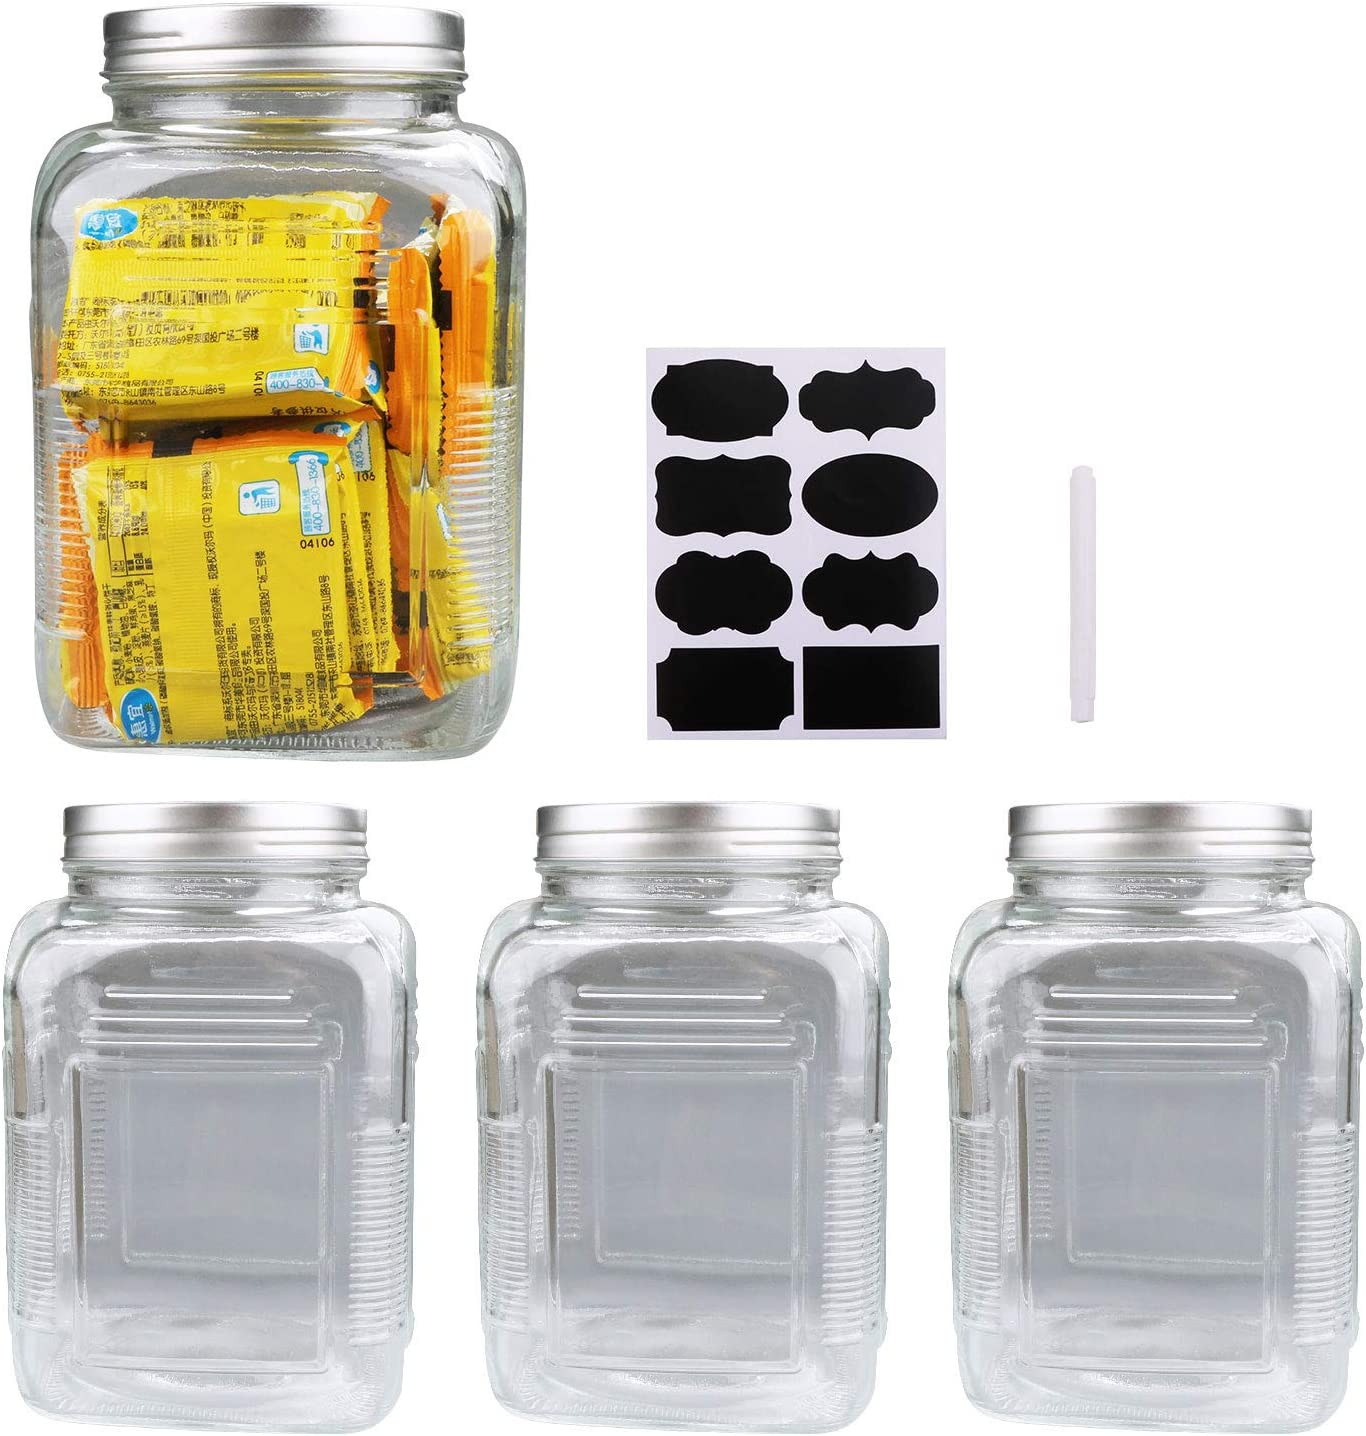 68oz / 2000ml Clear Mason Jar With Lids, Flrolove Airtight Glass Jars With Lid, Clear Square Jars Perfect for Food Storage, Cookies, Canning, Pasta, Beans and Oats, Set of 4